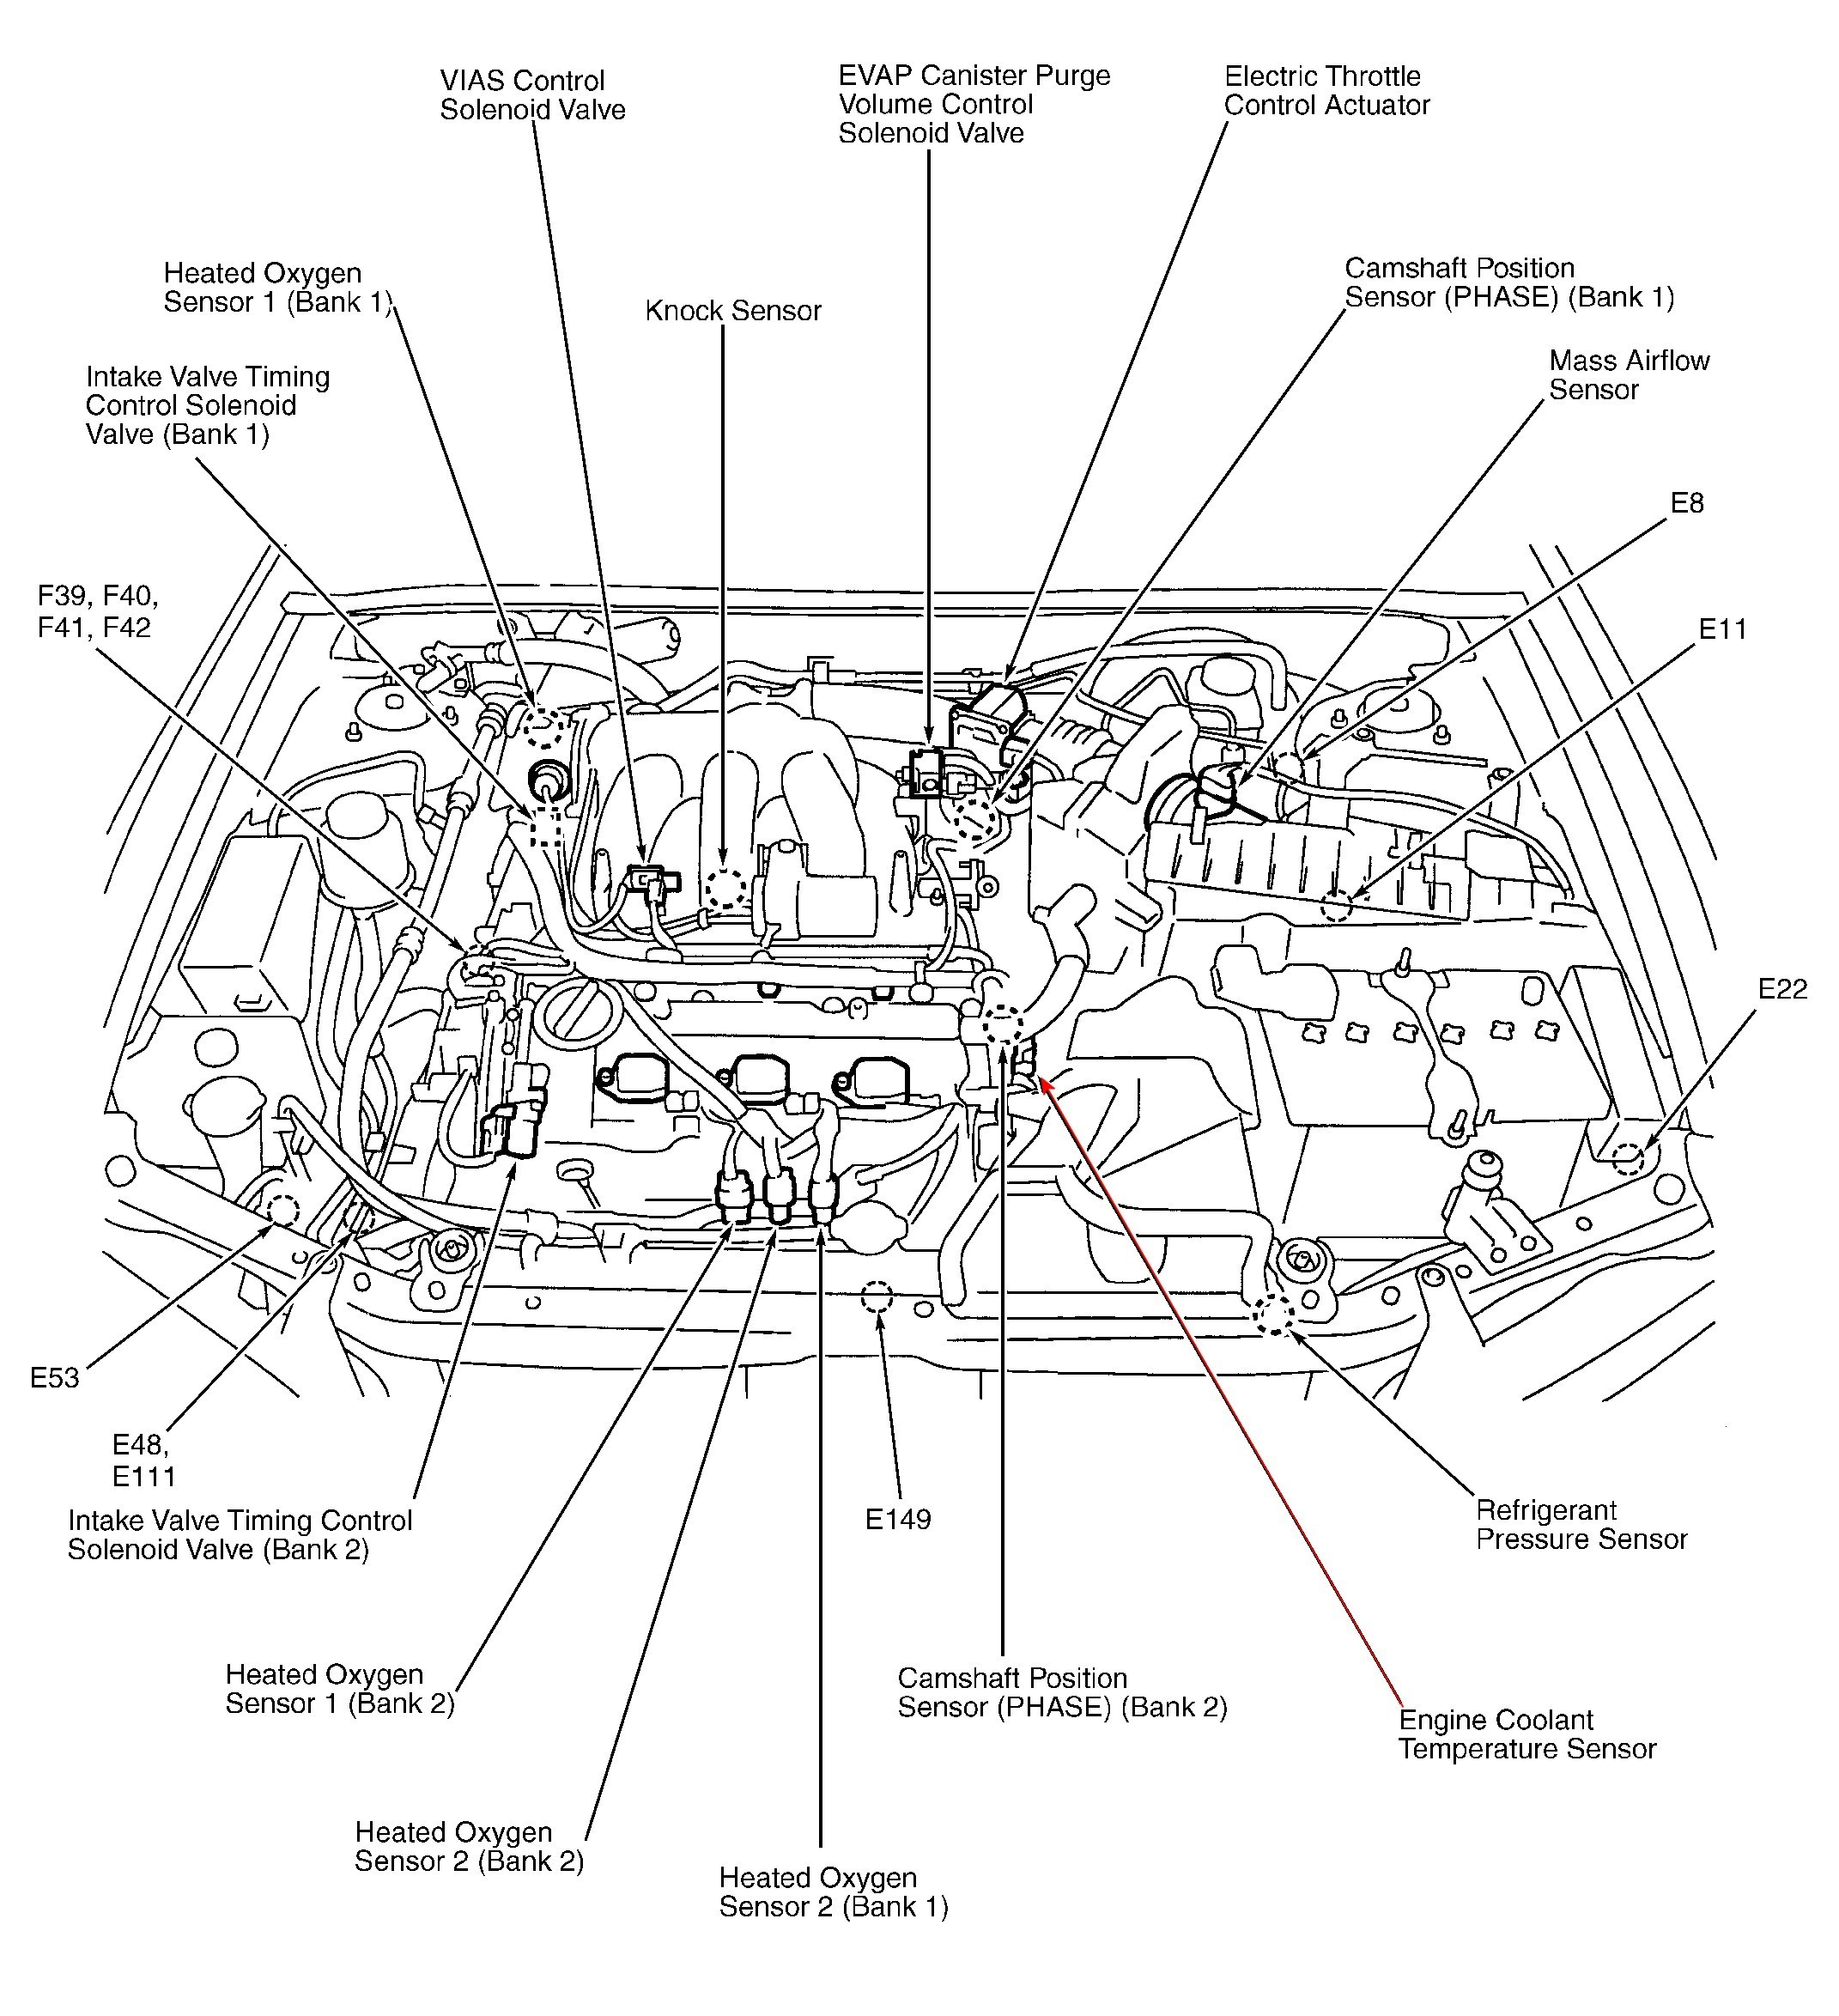 99 dodge ram 1500 heater control wiring diagram 2014 dodge ram 1500 brake control wiring diagram